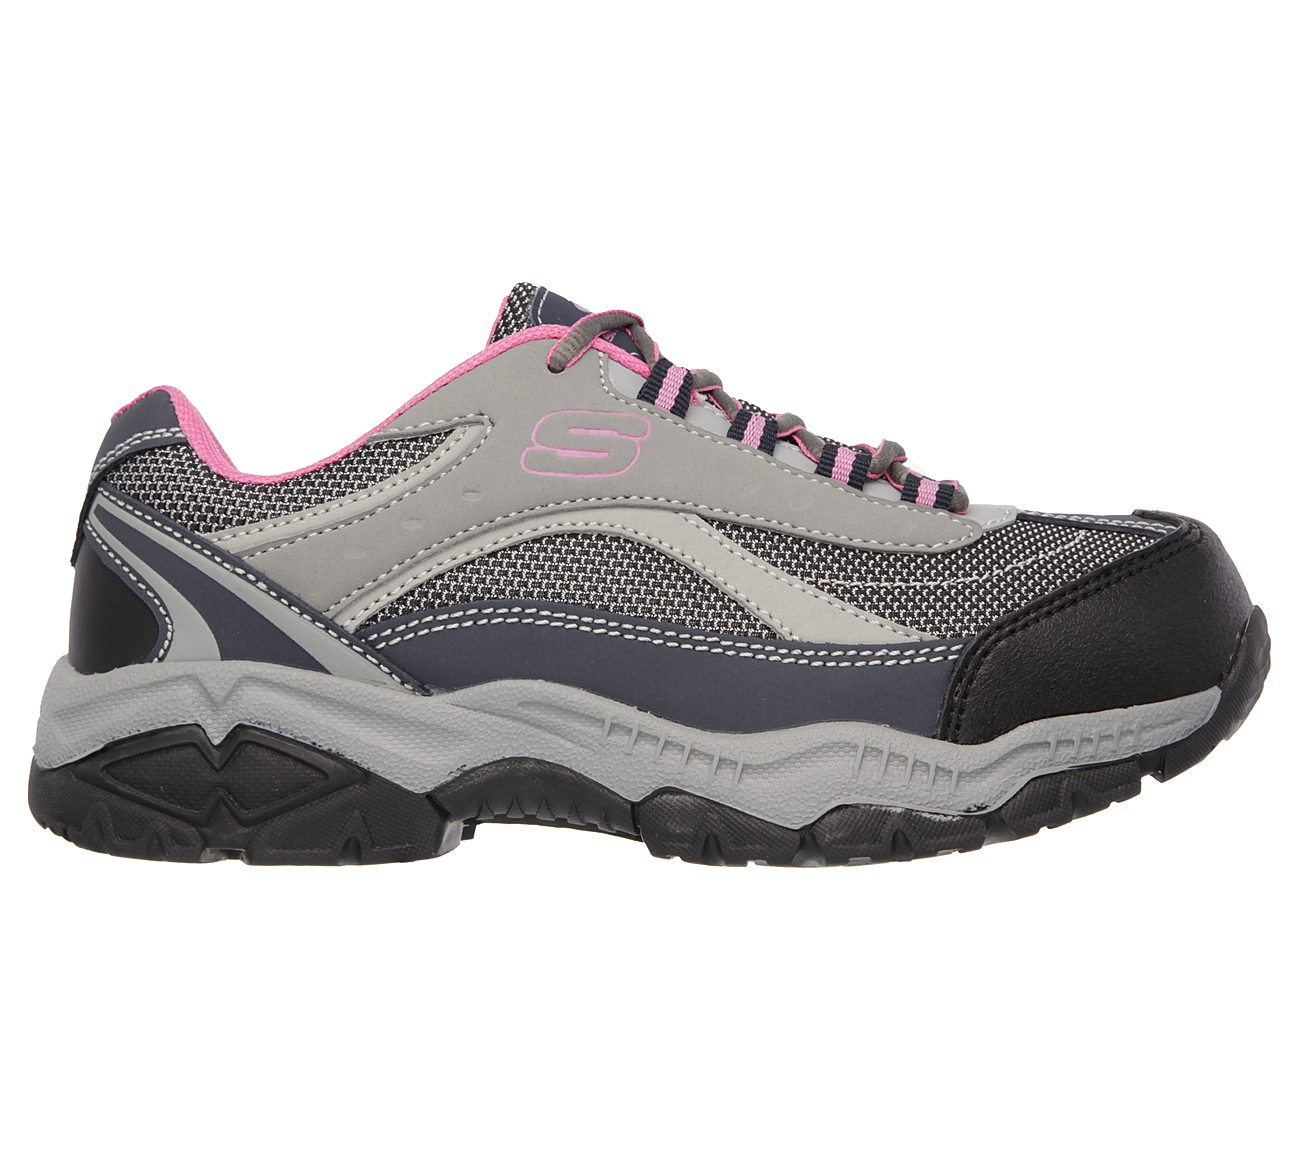 Skechers Work Relaxed Fit Doyline Steel Toe Sneaker (Women's) KVzfGiSLi